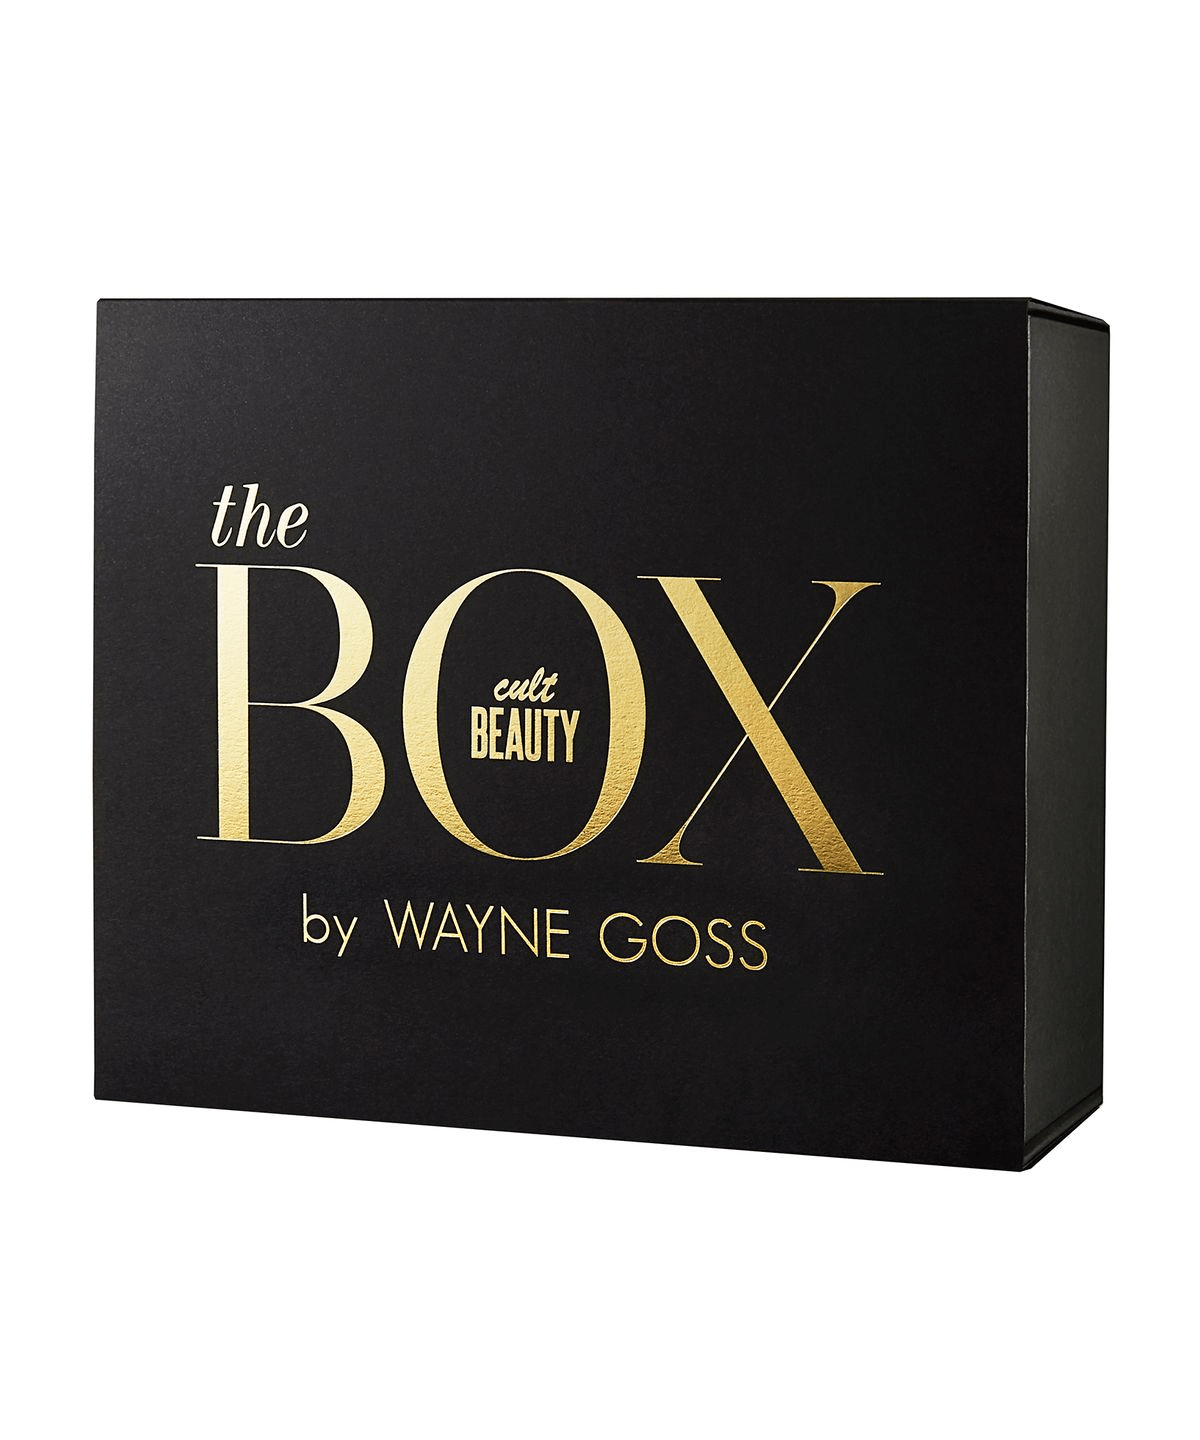 46eeefd0e5cc5 The 2019 Cult Beauty x Wayne Goss Box is available now! It's £140 + free  worldwide shipping (about £238 value)! FYI, the price without the VAT will  be less.